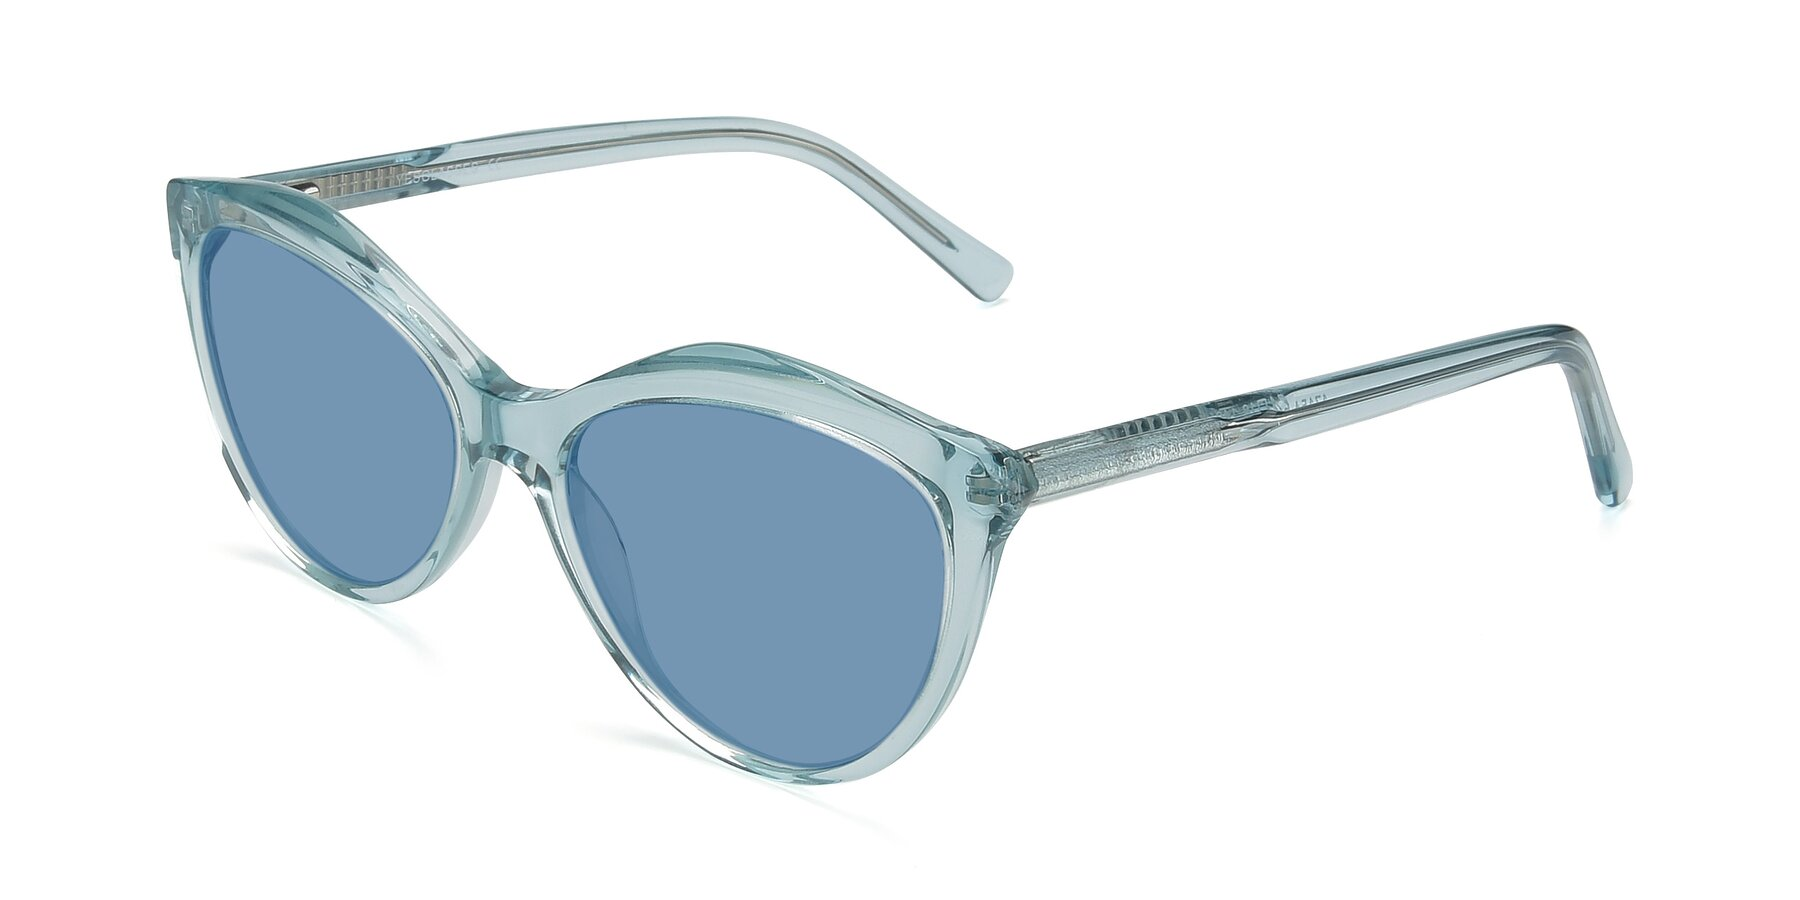 Angle of 17154 in Transparent Green with Medium Blue Tinted Lenses